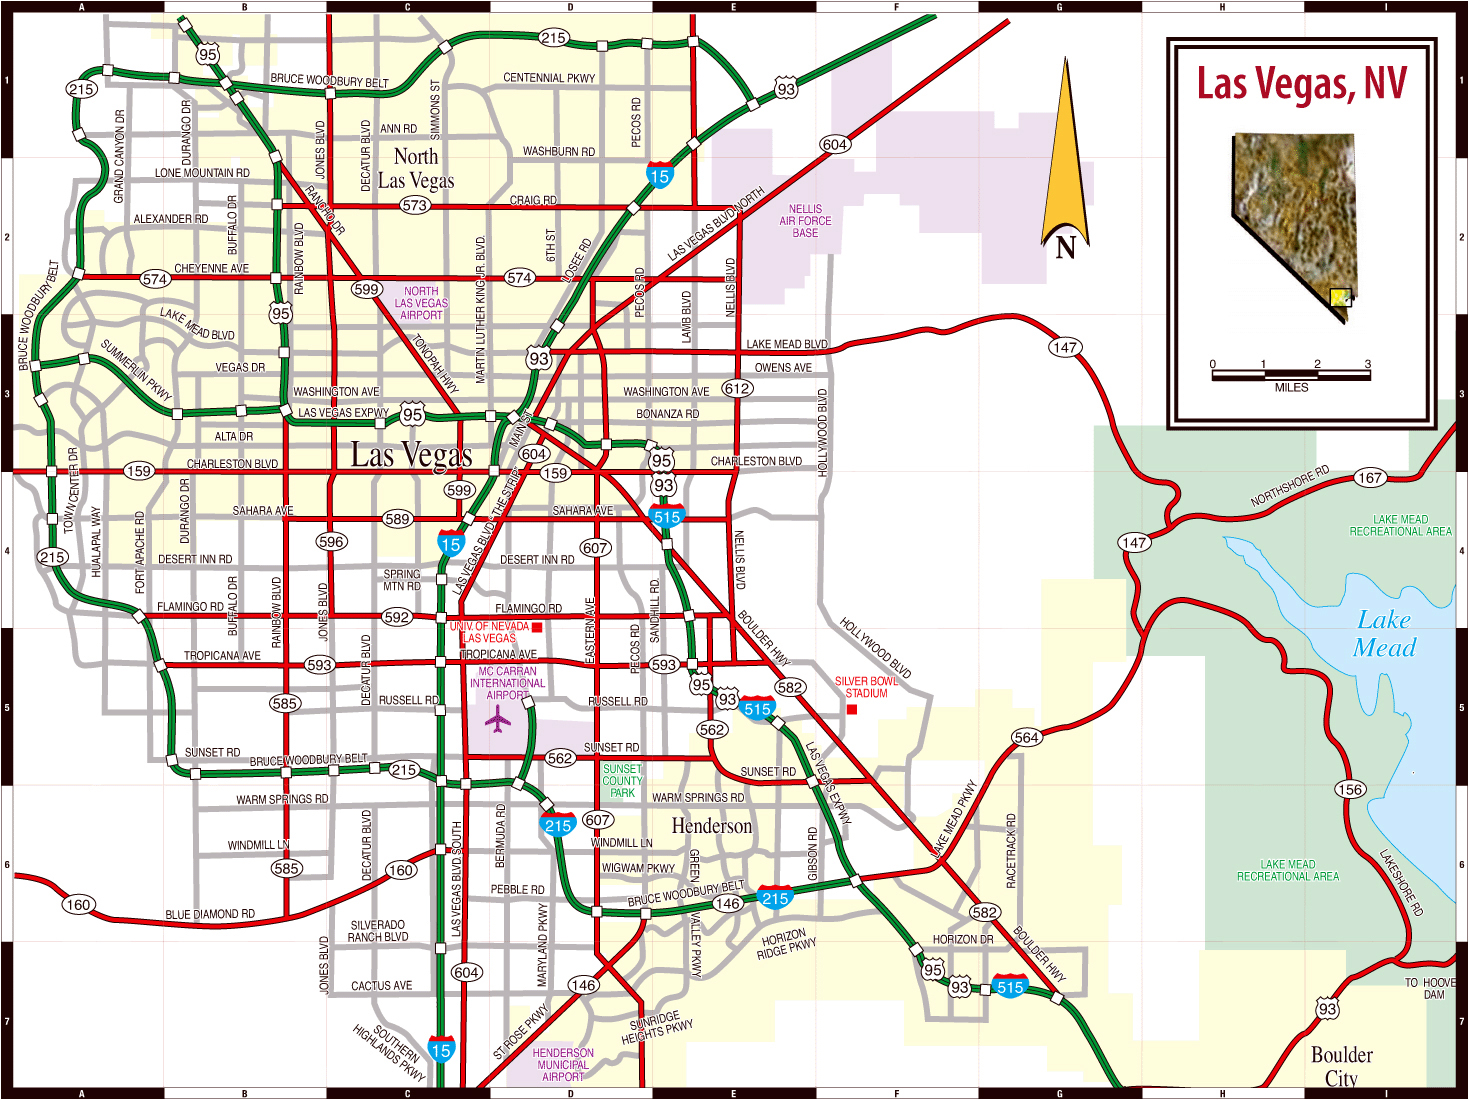 Large road map of Las Vegas city | Las Vegas | Nevada state ... on reno nevada map, nevada campus map, nevada map with key, idaho and nevada map, fly geyser nevada map, nevada lakes map, nevada transmission line map, nevada assembly map, laughlin nevada map, nevada's map, nevada utah map, nevada topographic map, nevada military map, nevada atlas, nevada vegetation map, nevada and oregon map, ely nevada map, nevada interstate map, california nevada map, nevada state map,